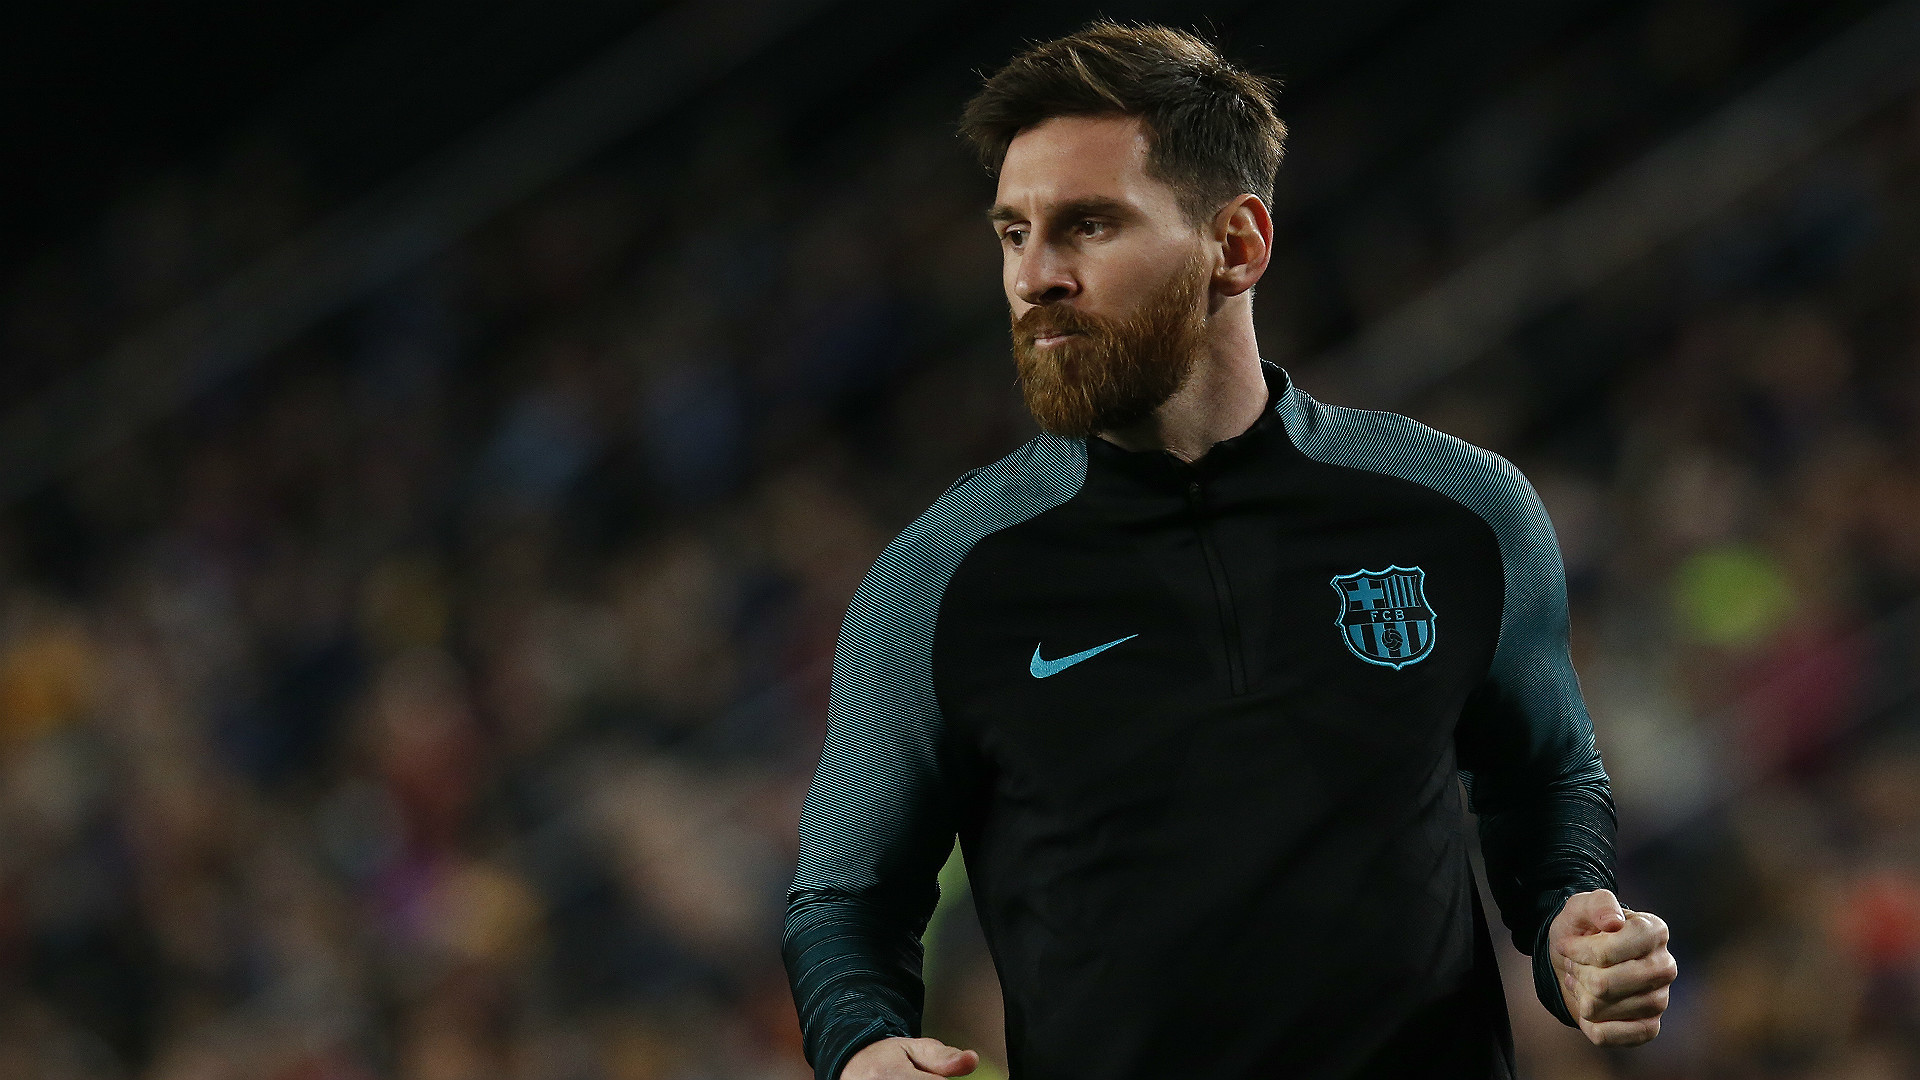 1920x1080 How many social-media followers does Messi have?